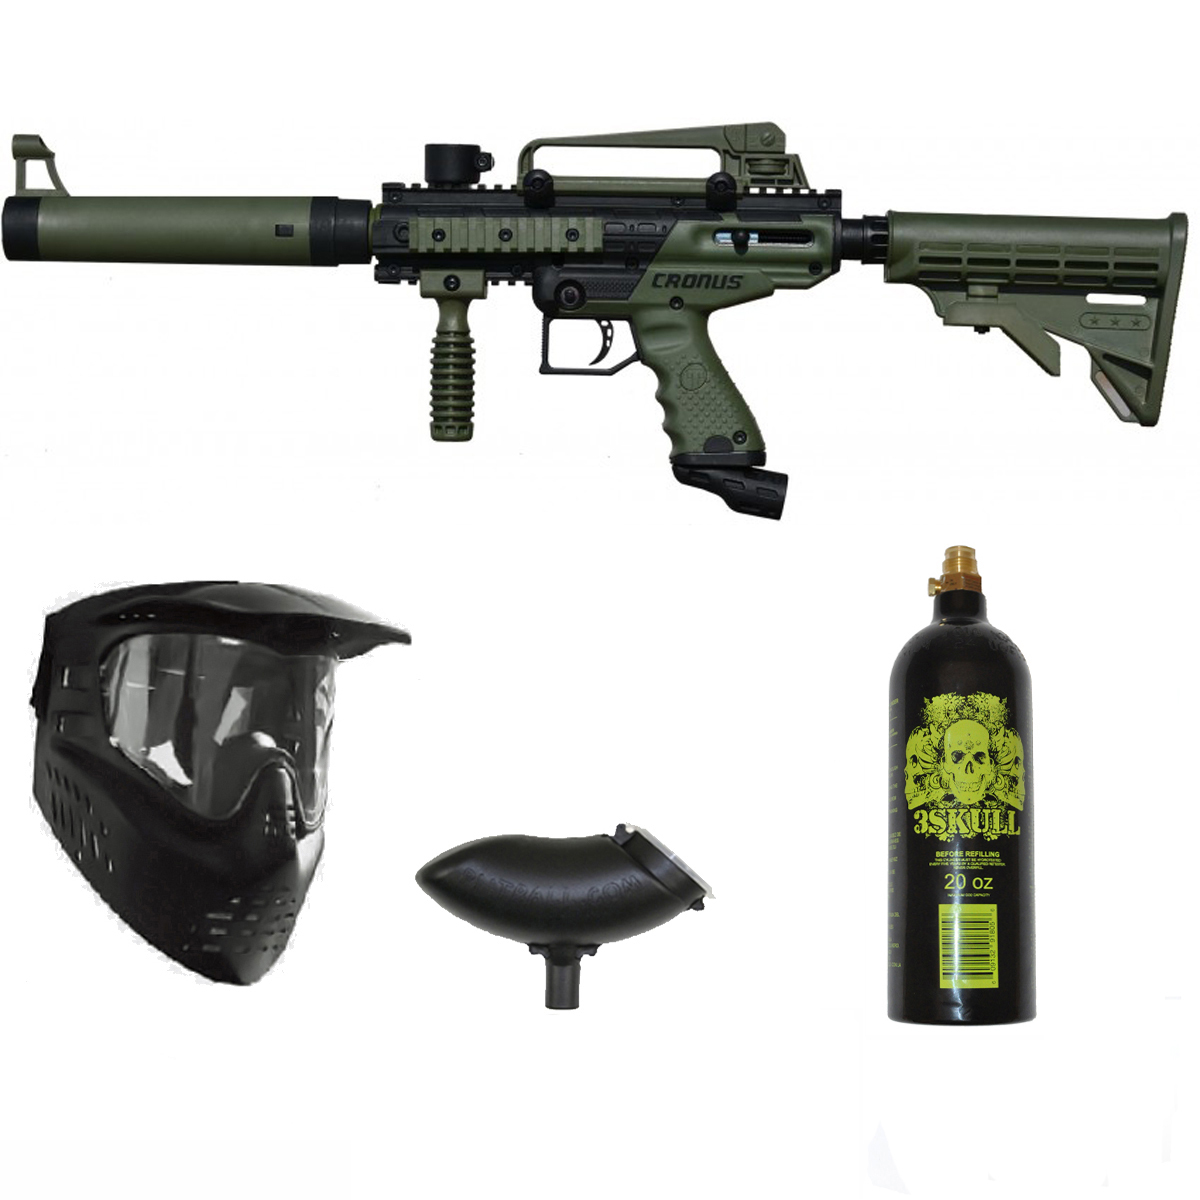 Tippmann Cronus Tactical Paintball Gun 3Skull Package Set Olive by